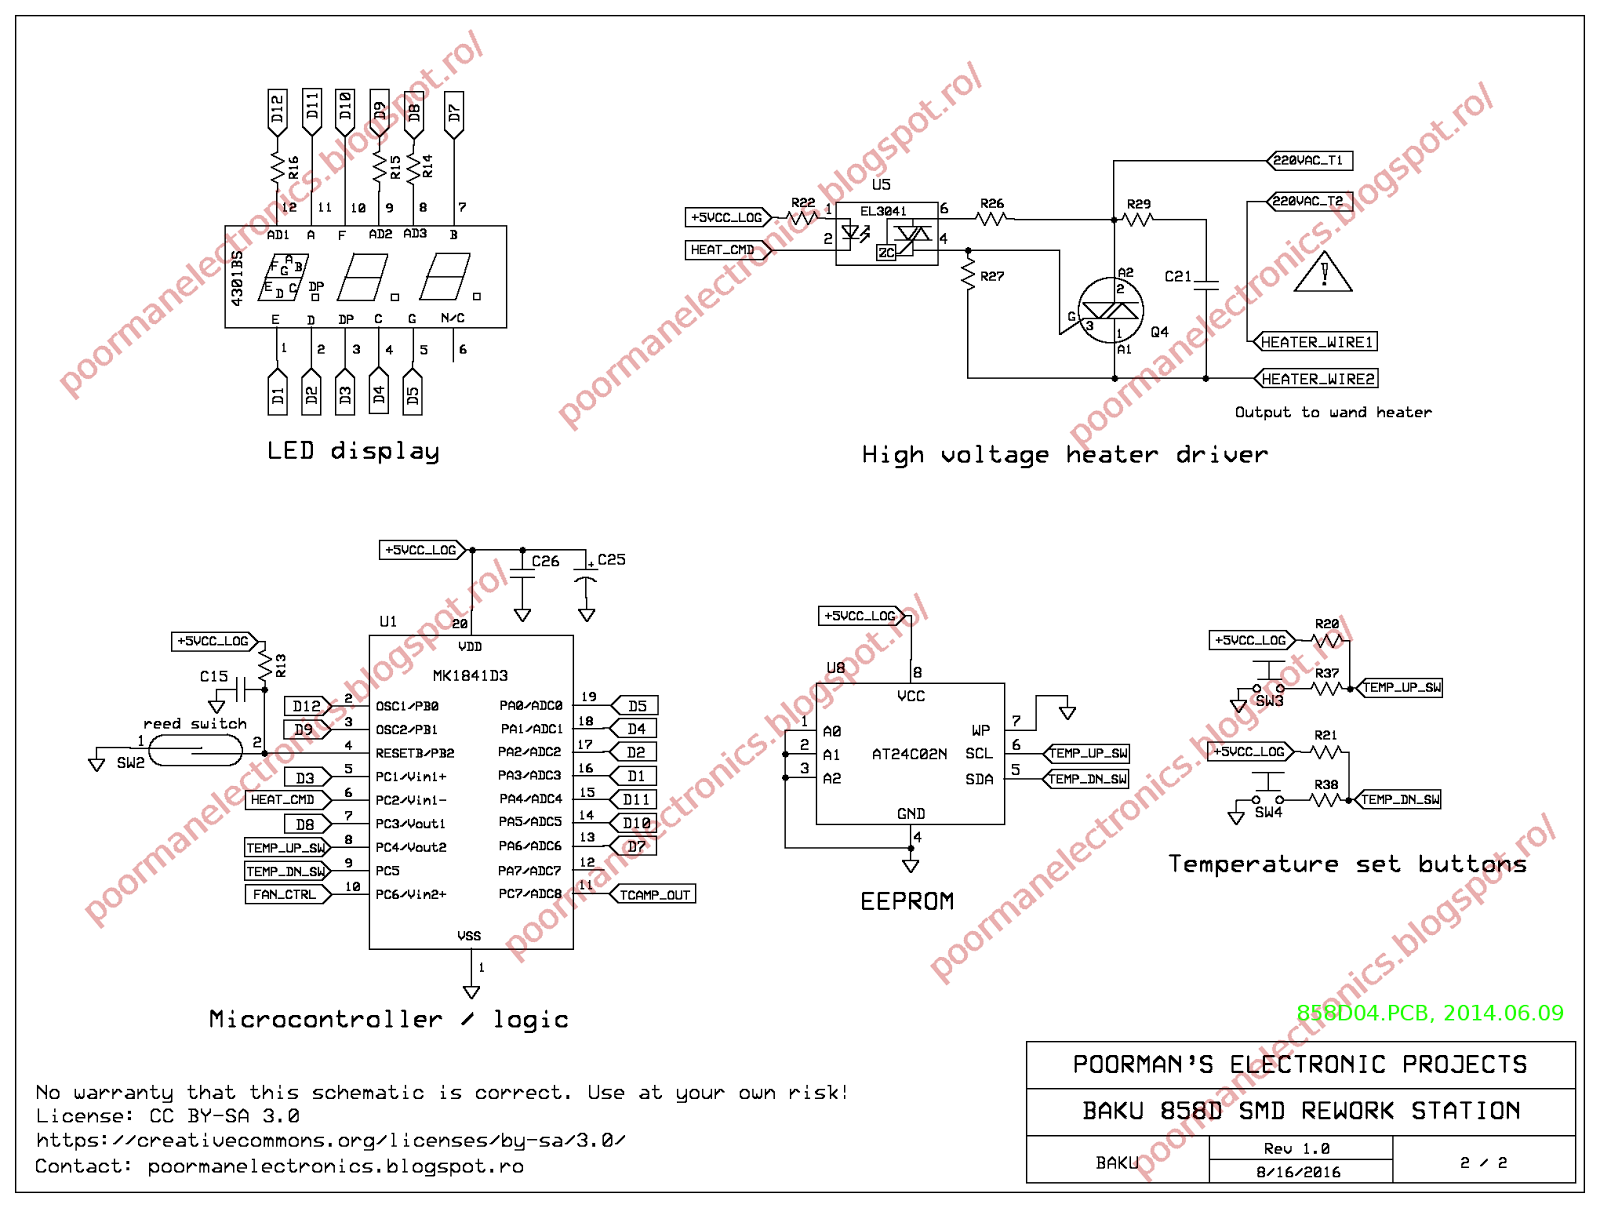 Poorman's Electronic Projects: Schematic and teardown of BAKU 858D on printed circuit board schematics, electronics schematics, engineering schematics,